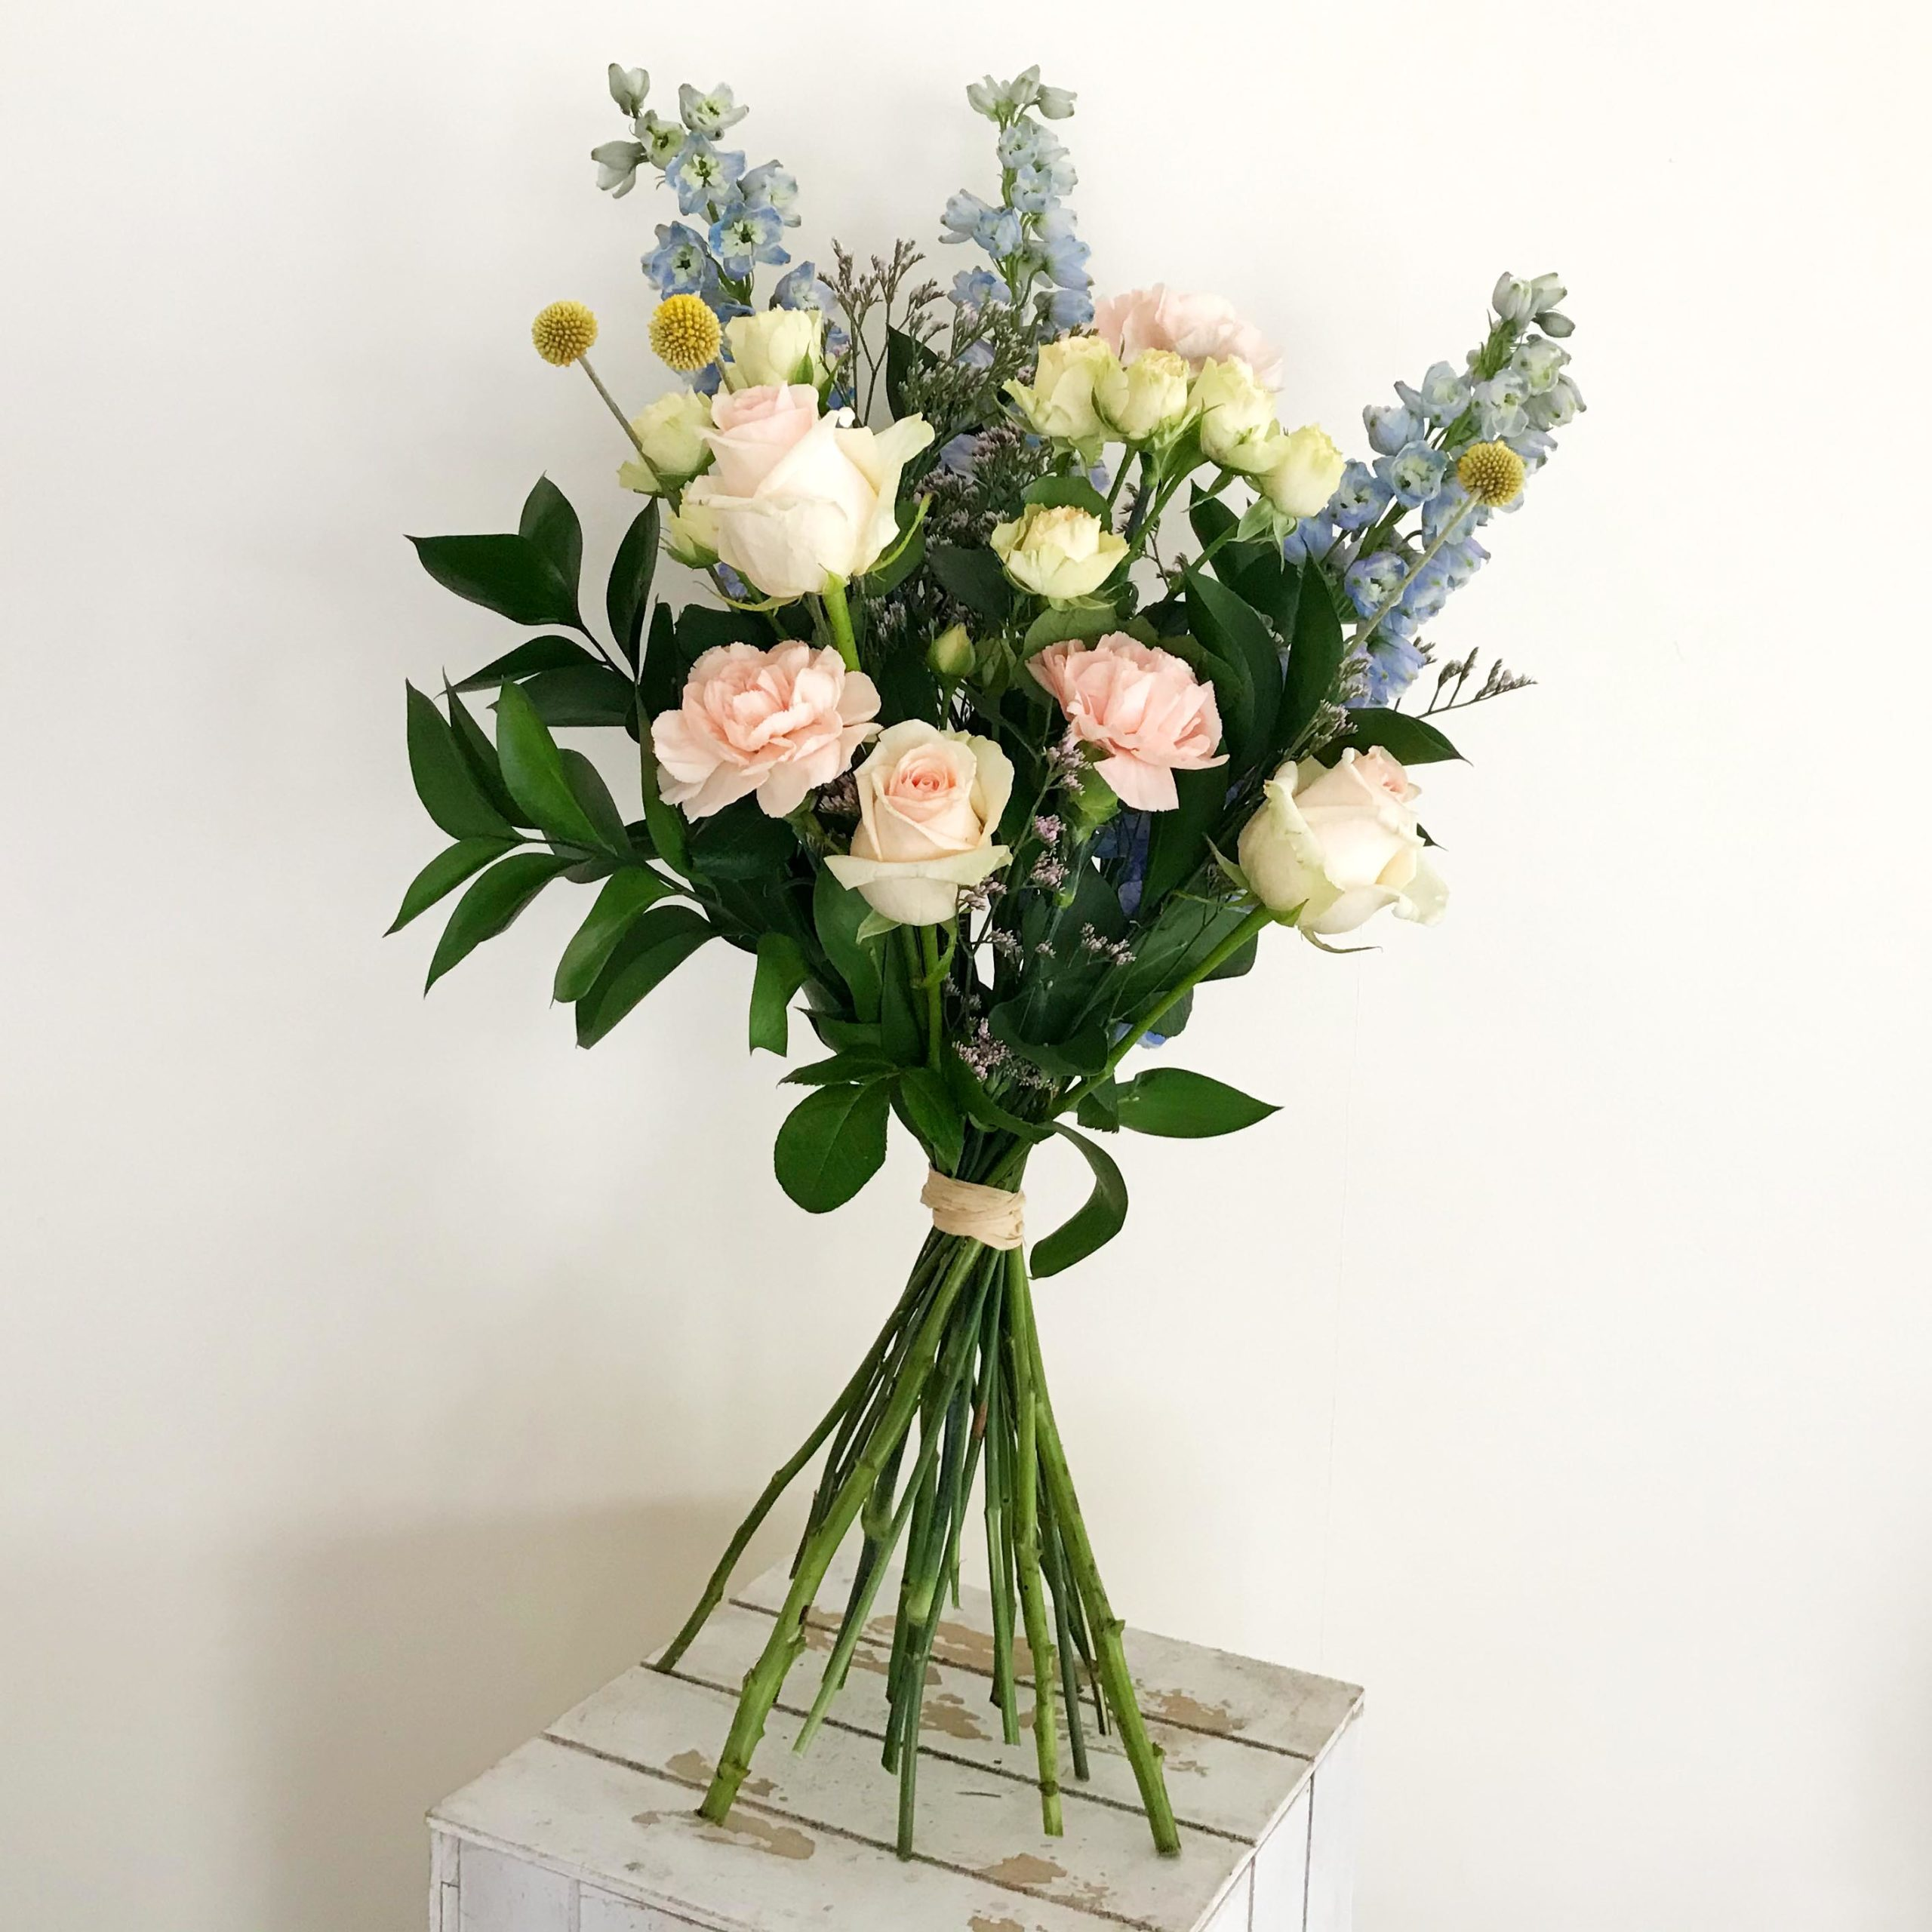 Monthly Subscription Flowers Leamington Spa